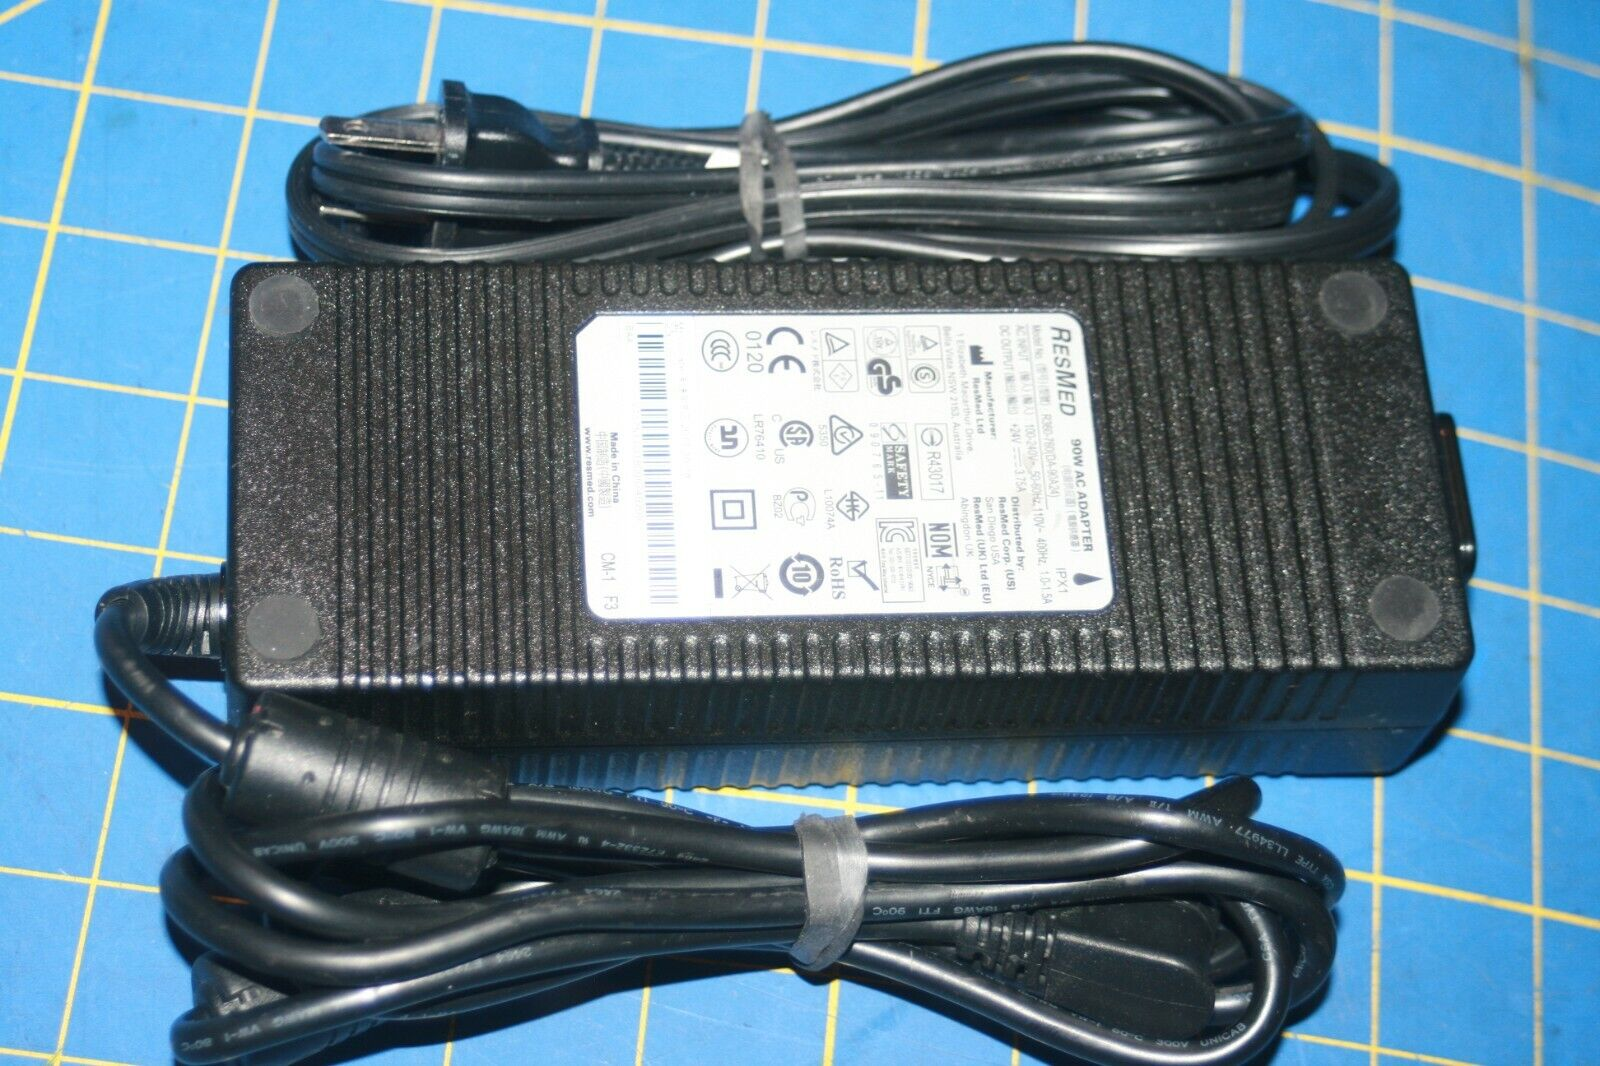 OEM/Genuine ResMed 90W AC Adapter Model No. R360-760 DA-90A24 3-Pin-Tested - $32.99